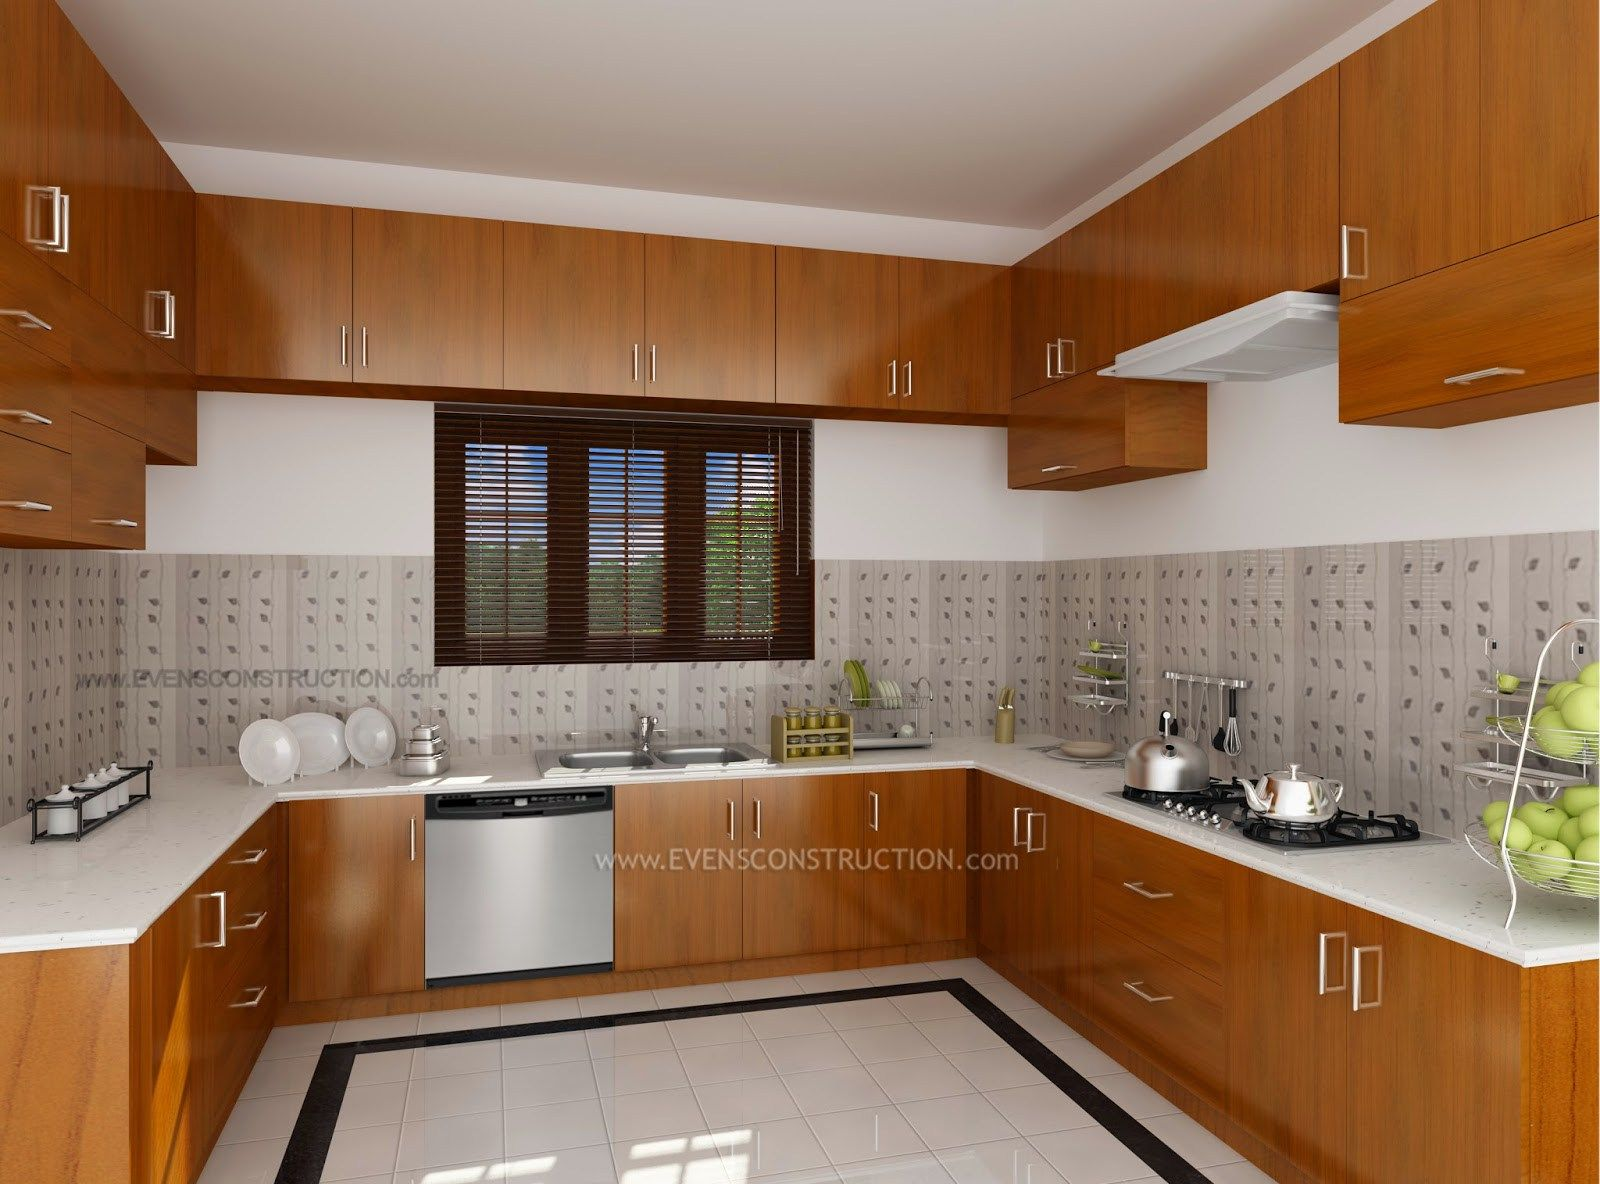 Design interior kitchen home kerala modern house kitchen for Modern kitchen units designs